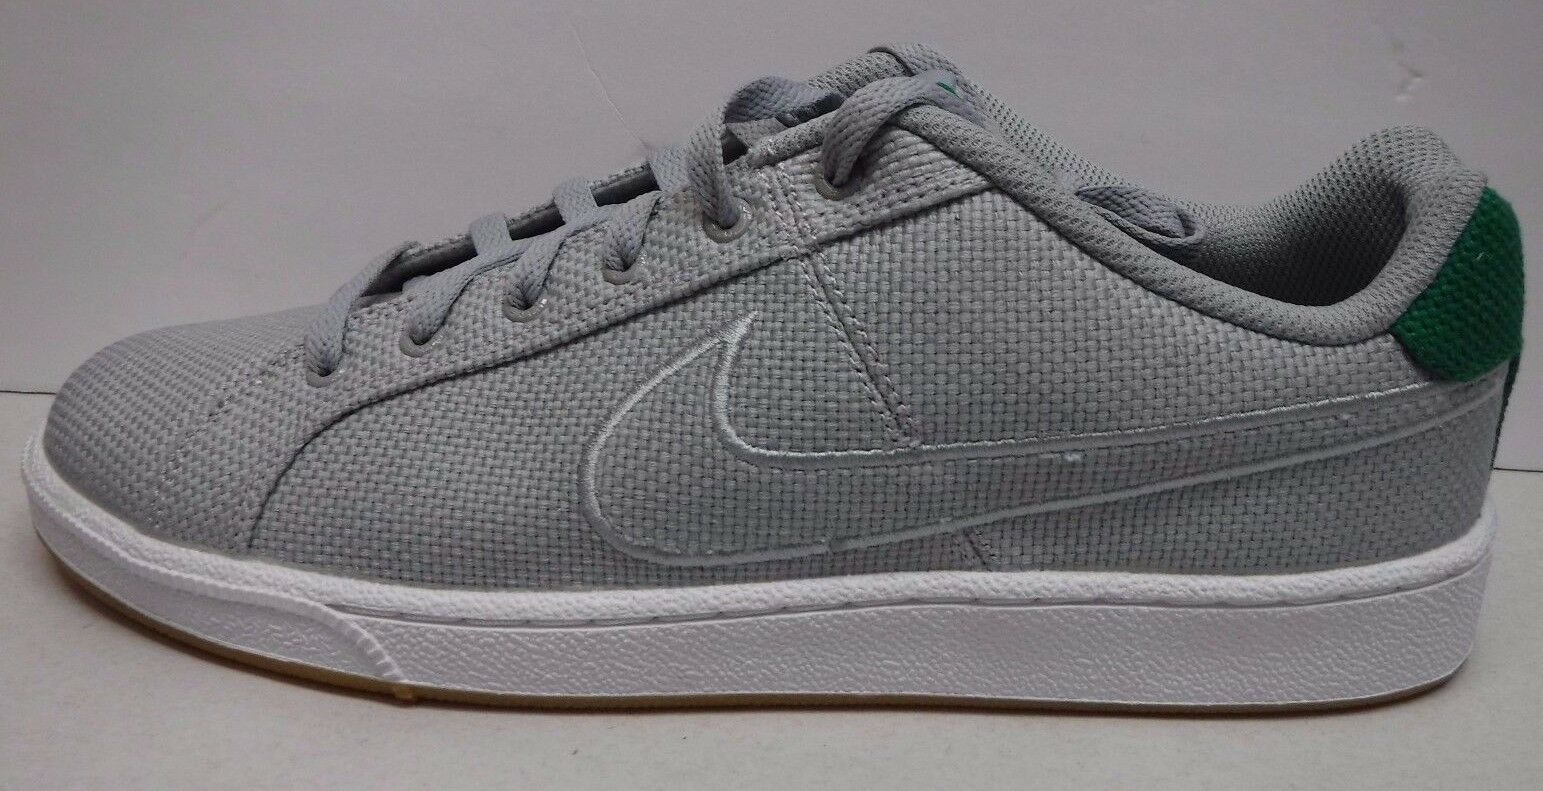 Nike Size 10.5 New Gray Court Sneakers New 10.5 Mens Shoes 006ae6